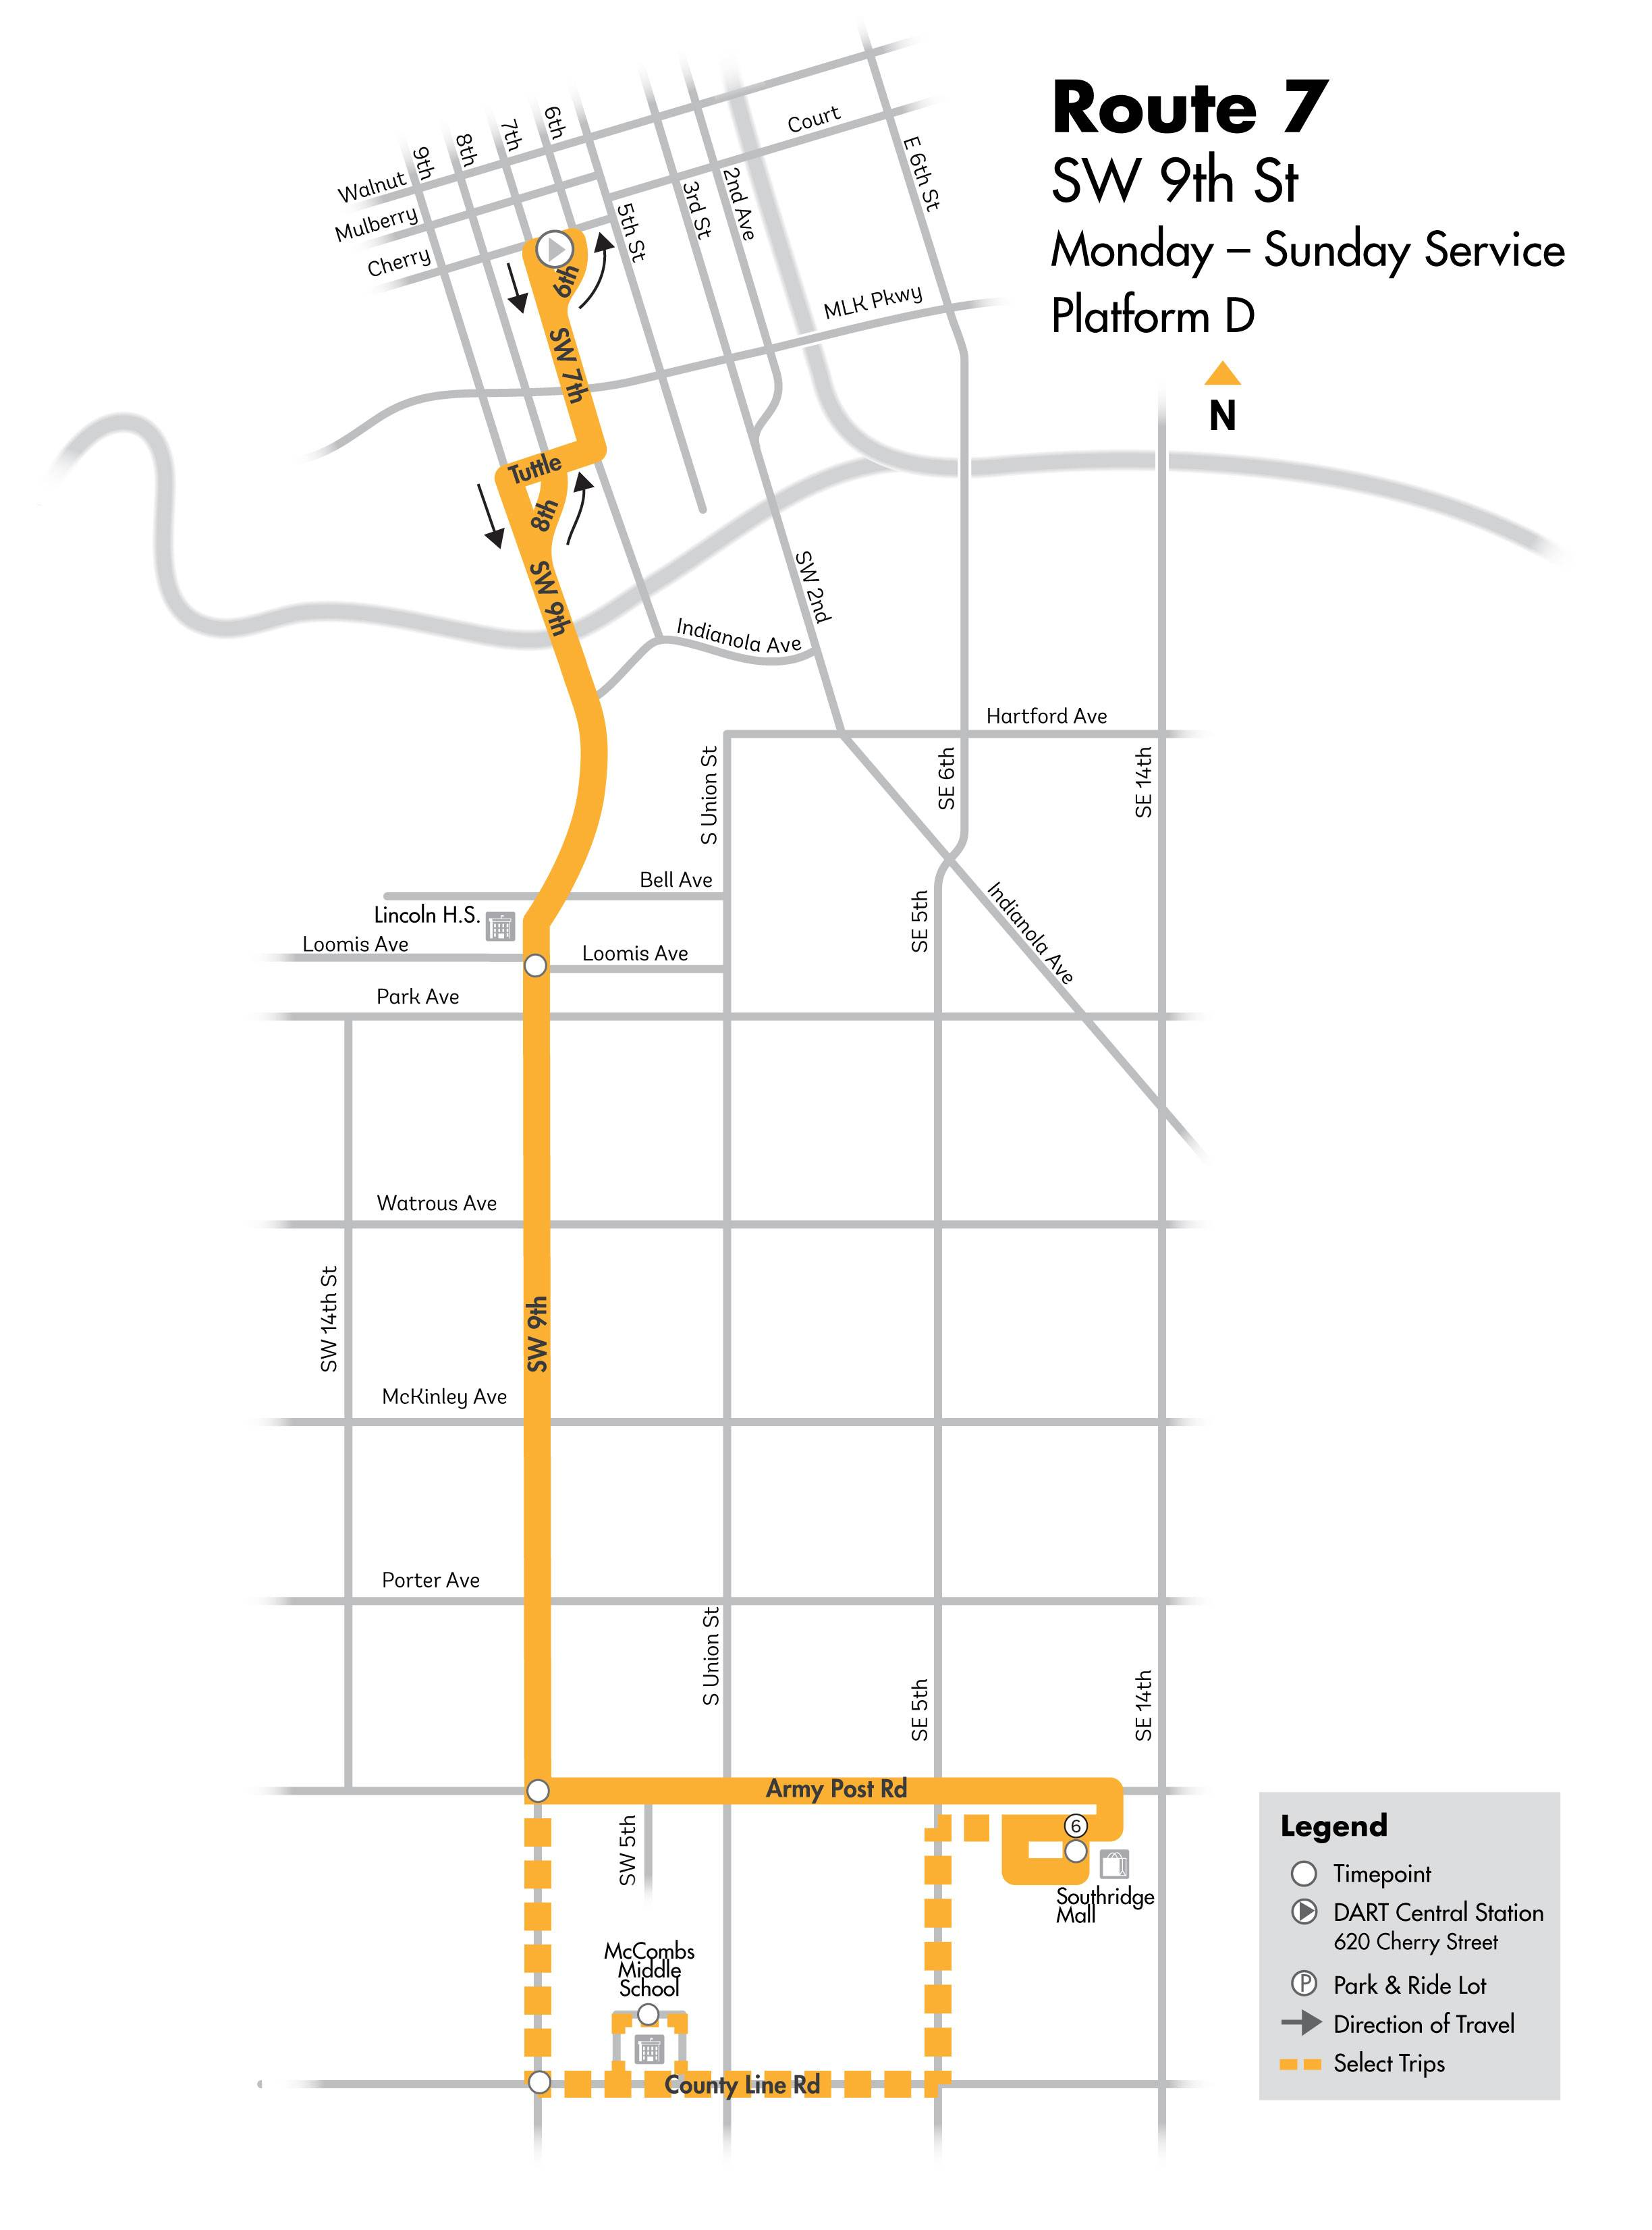 DART Local Route 7 - SW 9th Map